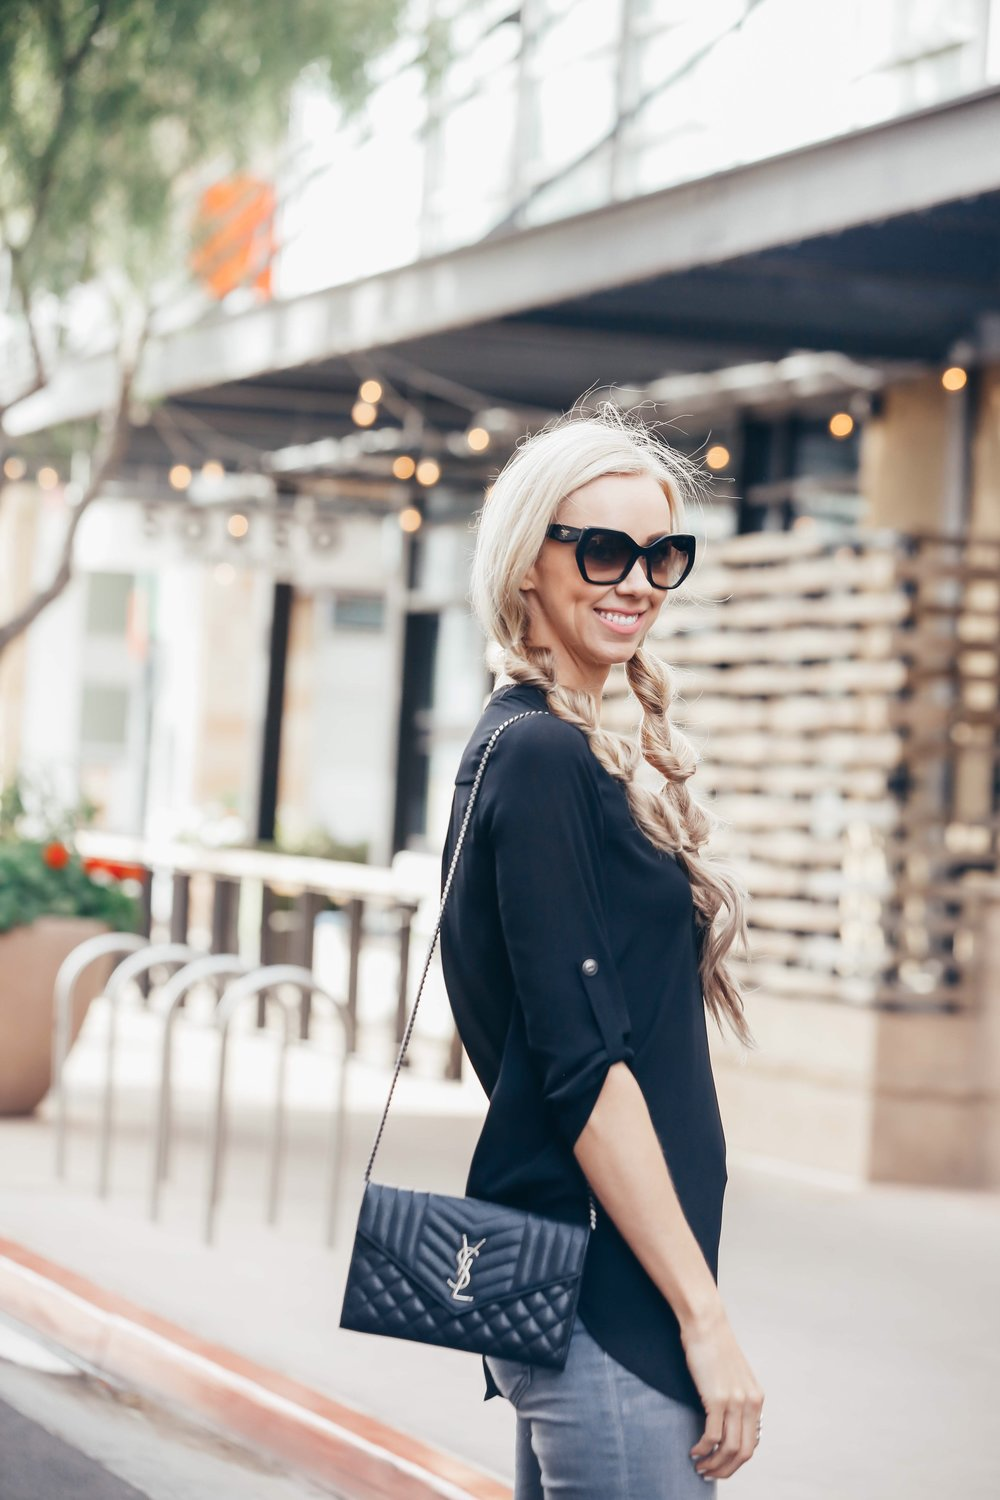 street-style-black-halogen-top-pigtails-ysl-purse.jpg